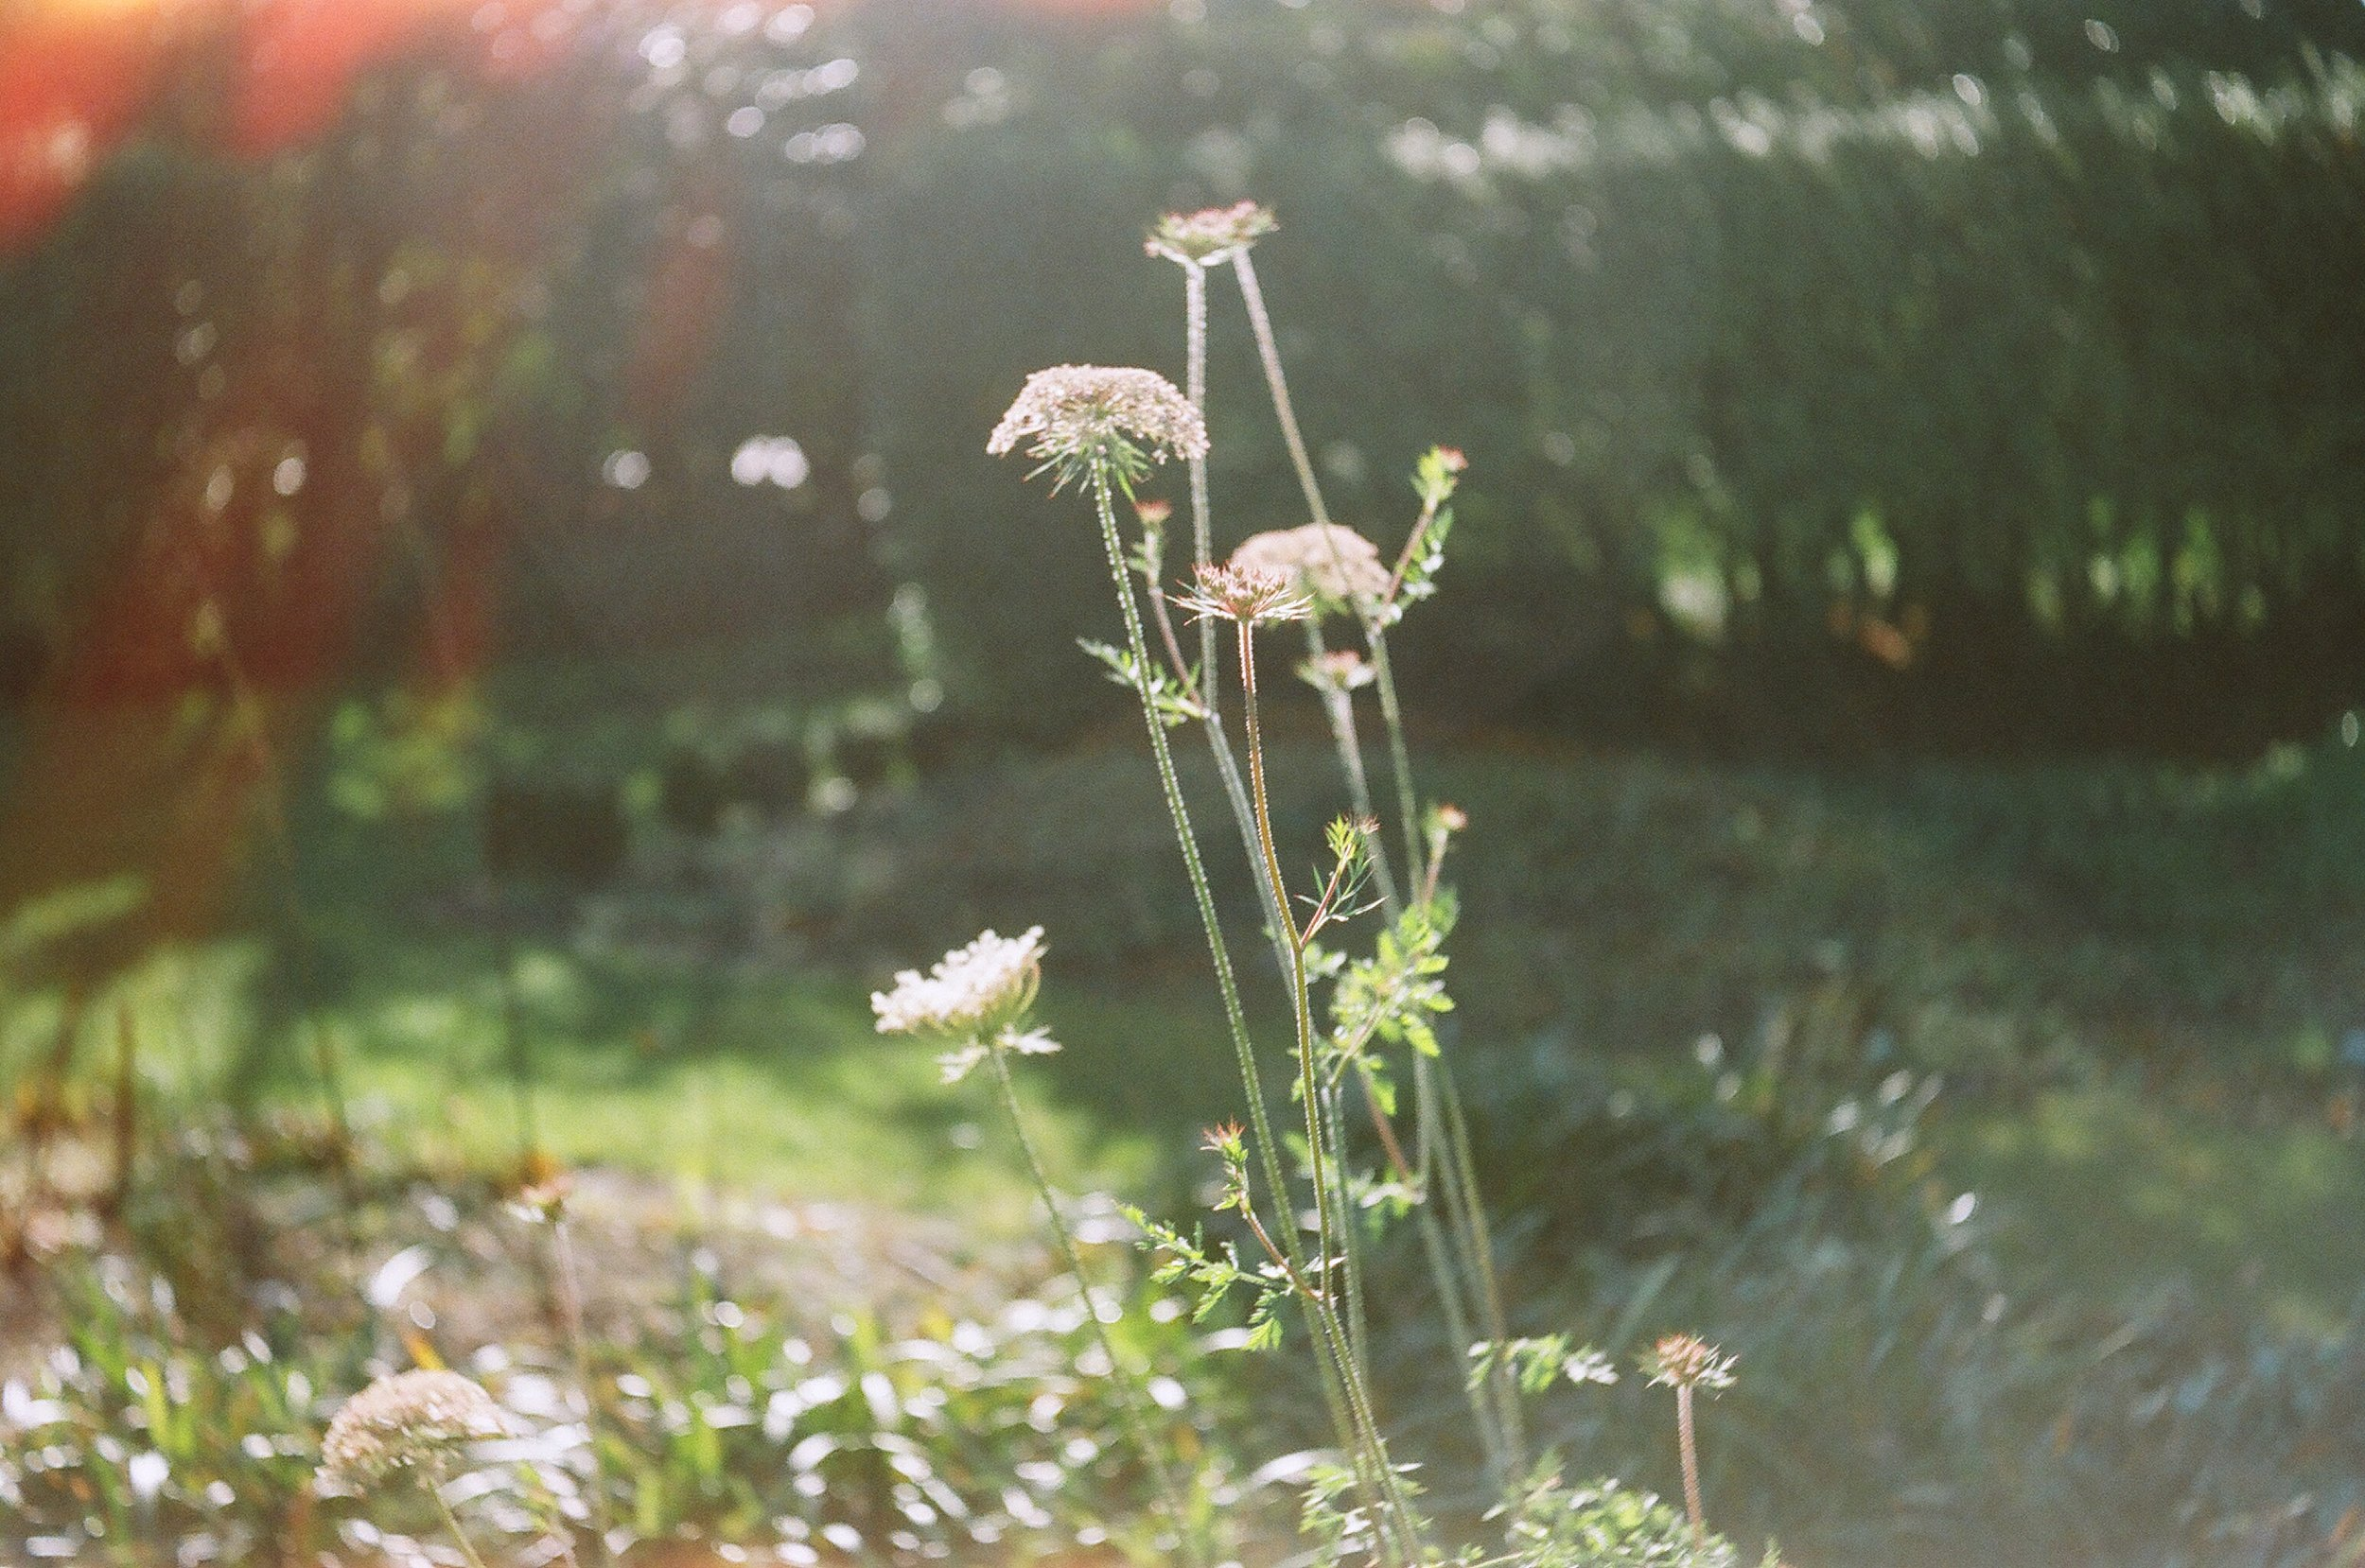 The focus was spot on in this image, it also has a lovely light leak in the upper left corner. Taken with Kodak Gold 200 film on the 1958 Balda Baldessa 1 a